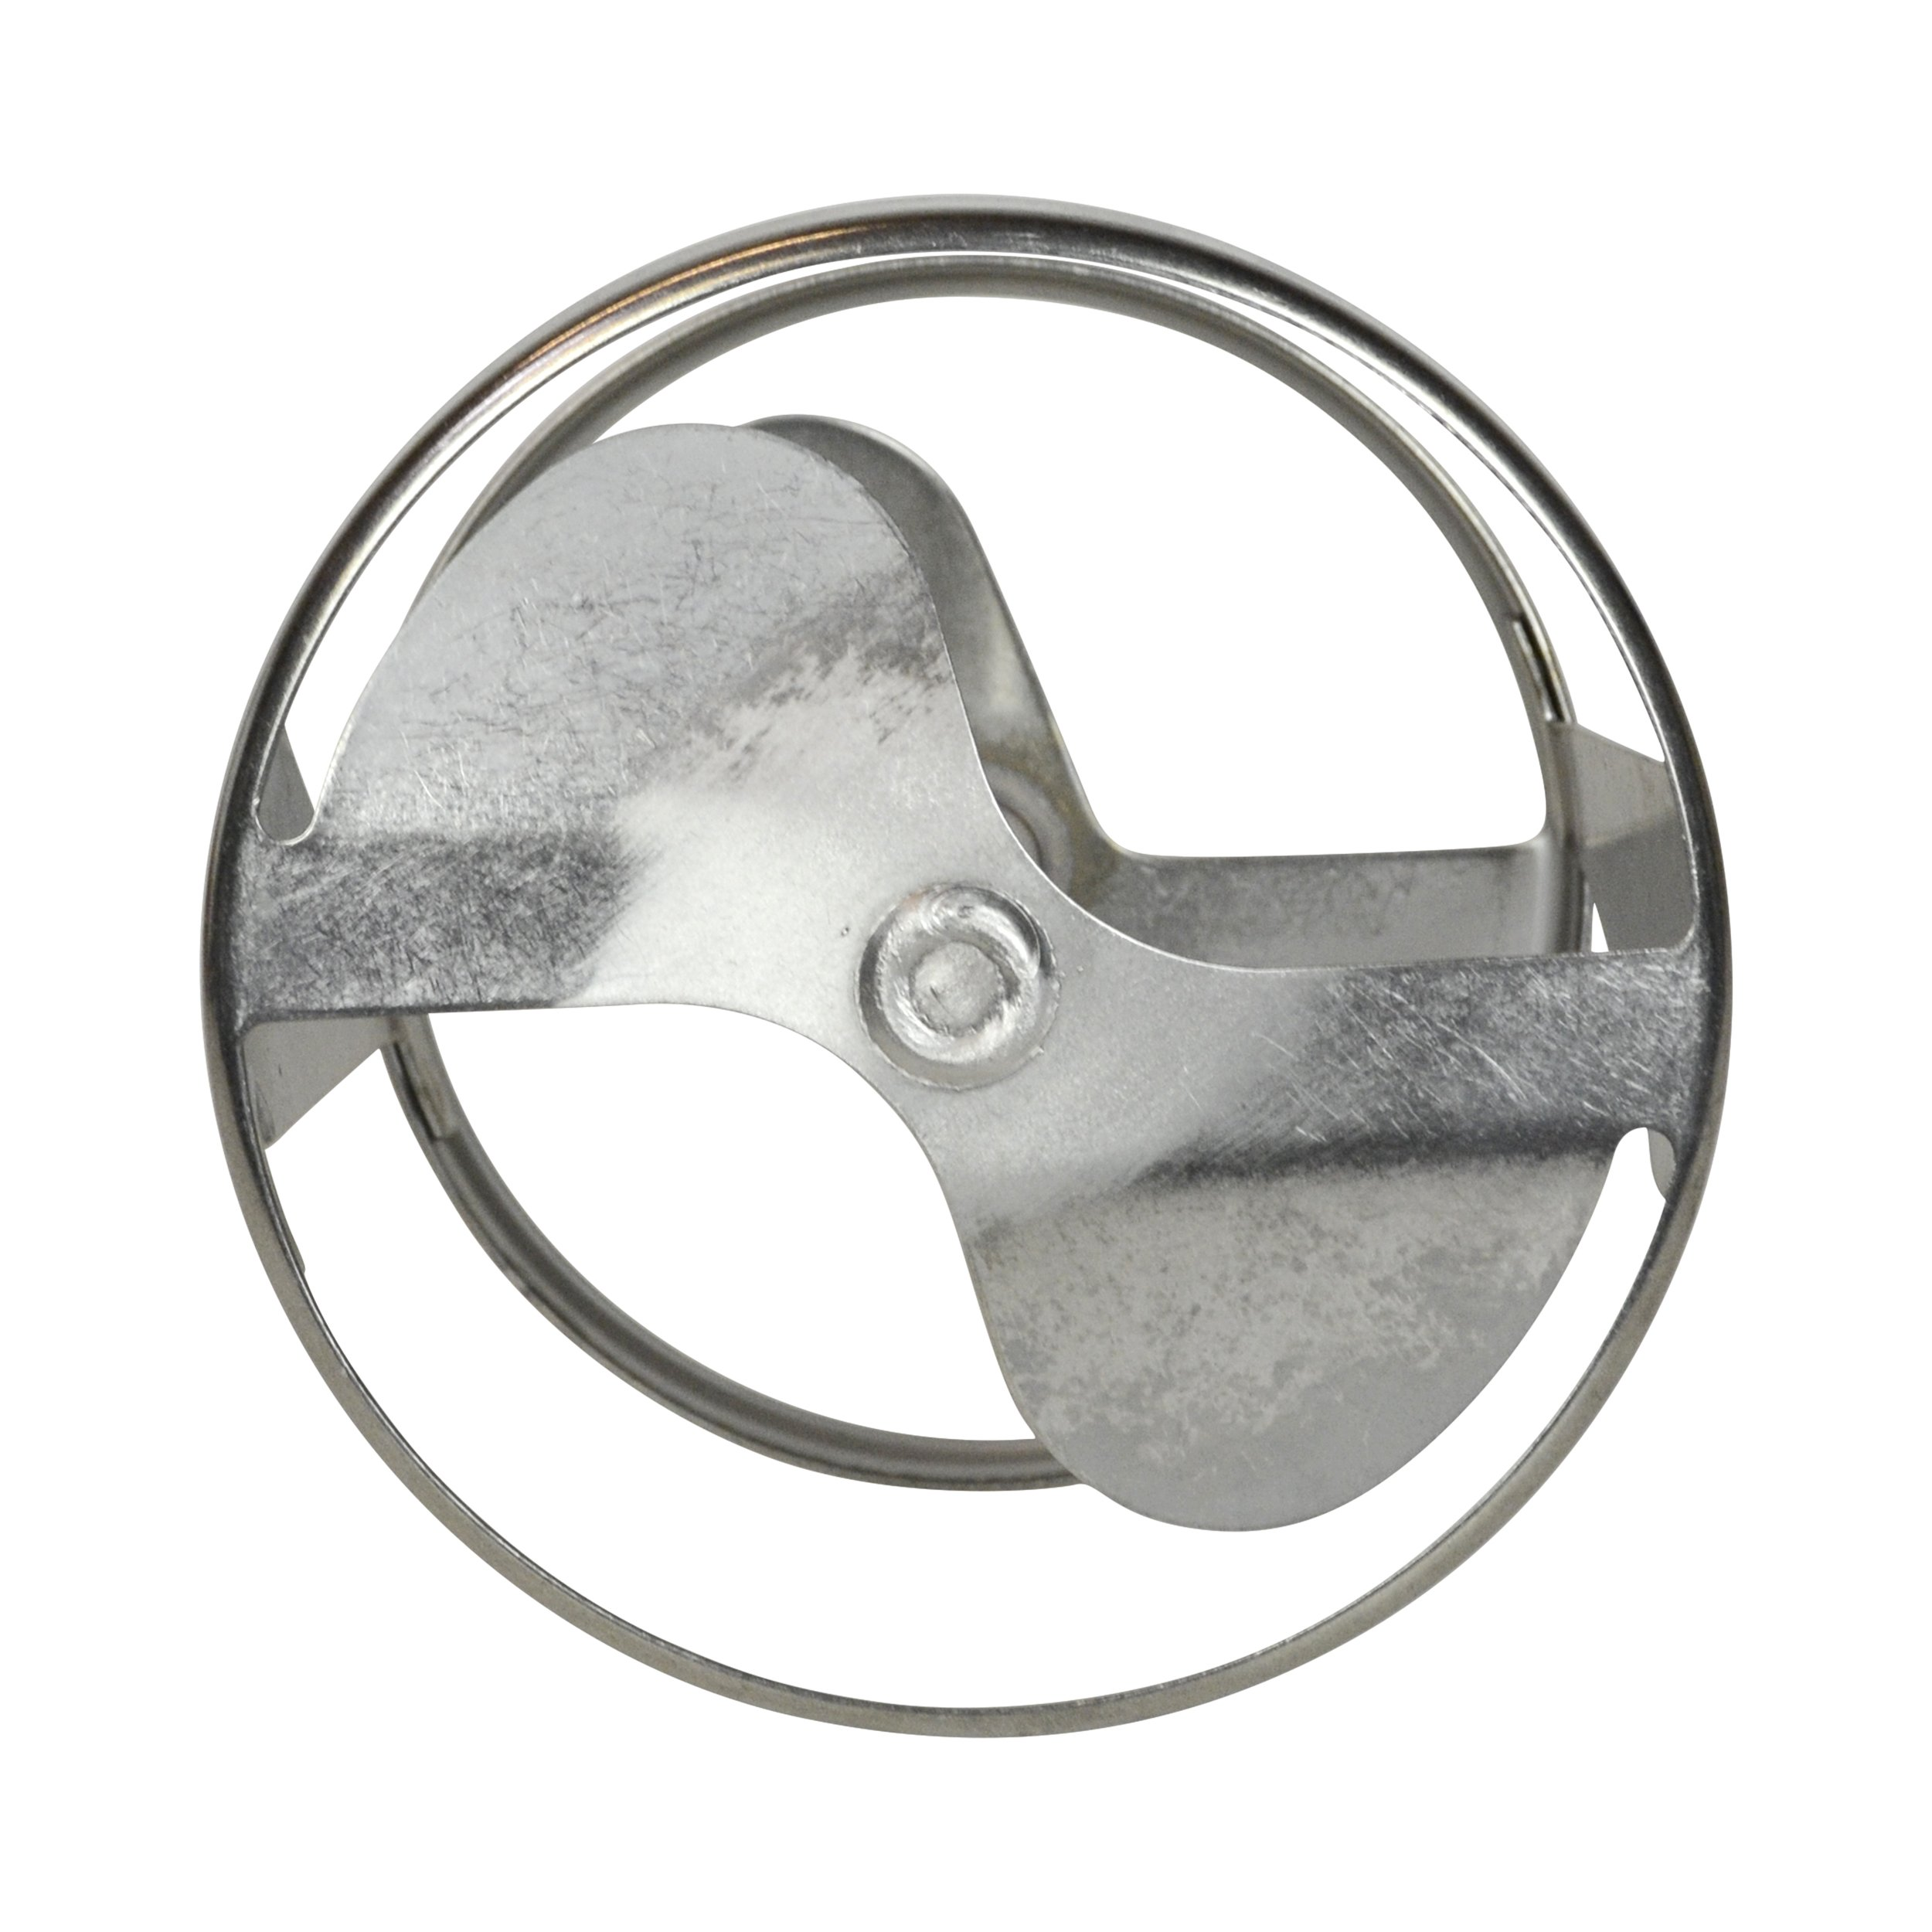 Jiffy Mixer CO. PS-1 1/2'' Shaft 5-10 Gallon Stainless Steel Mixing Blade (4-Pack) by Jiffy Mixer (Image #2)